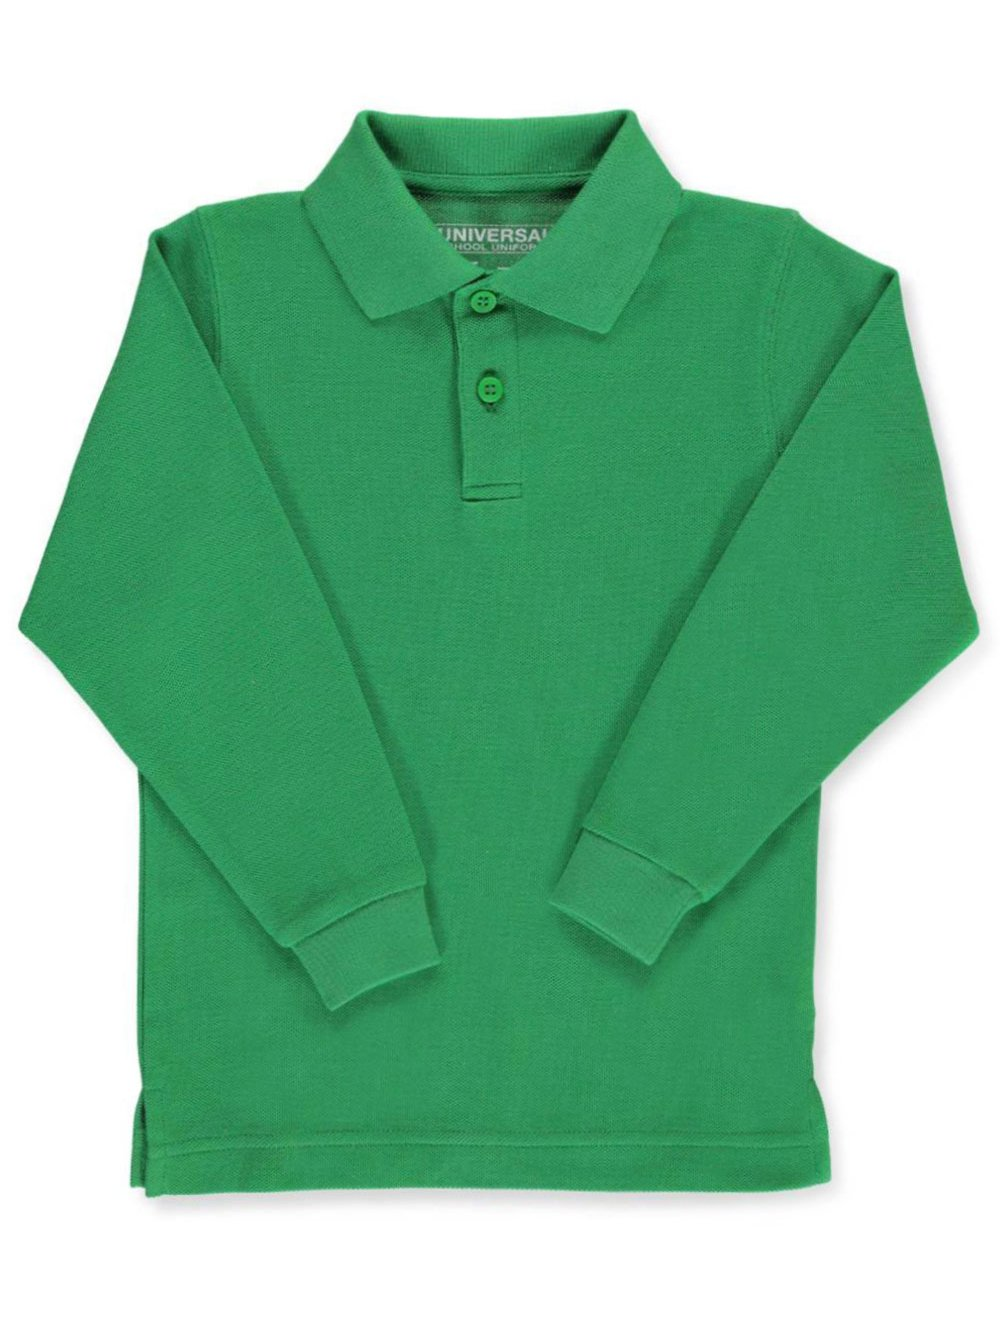 Universal Unisex L/S Pique Polo - Kelly Green, 14